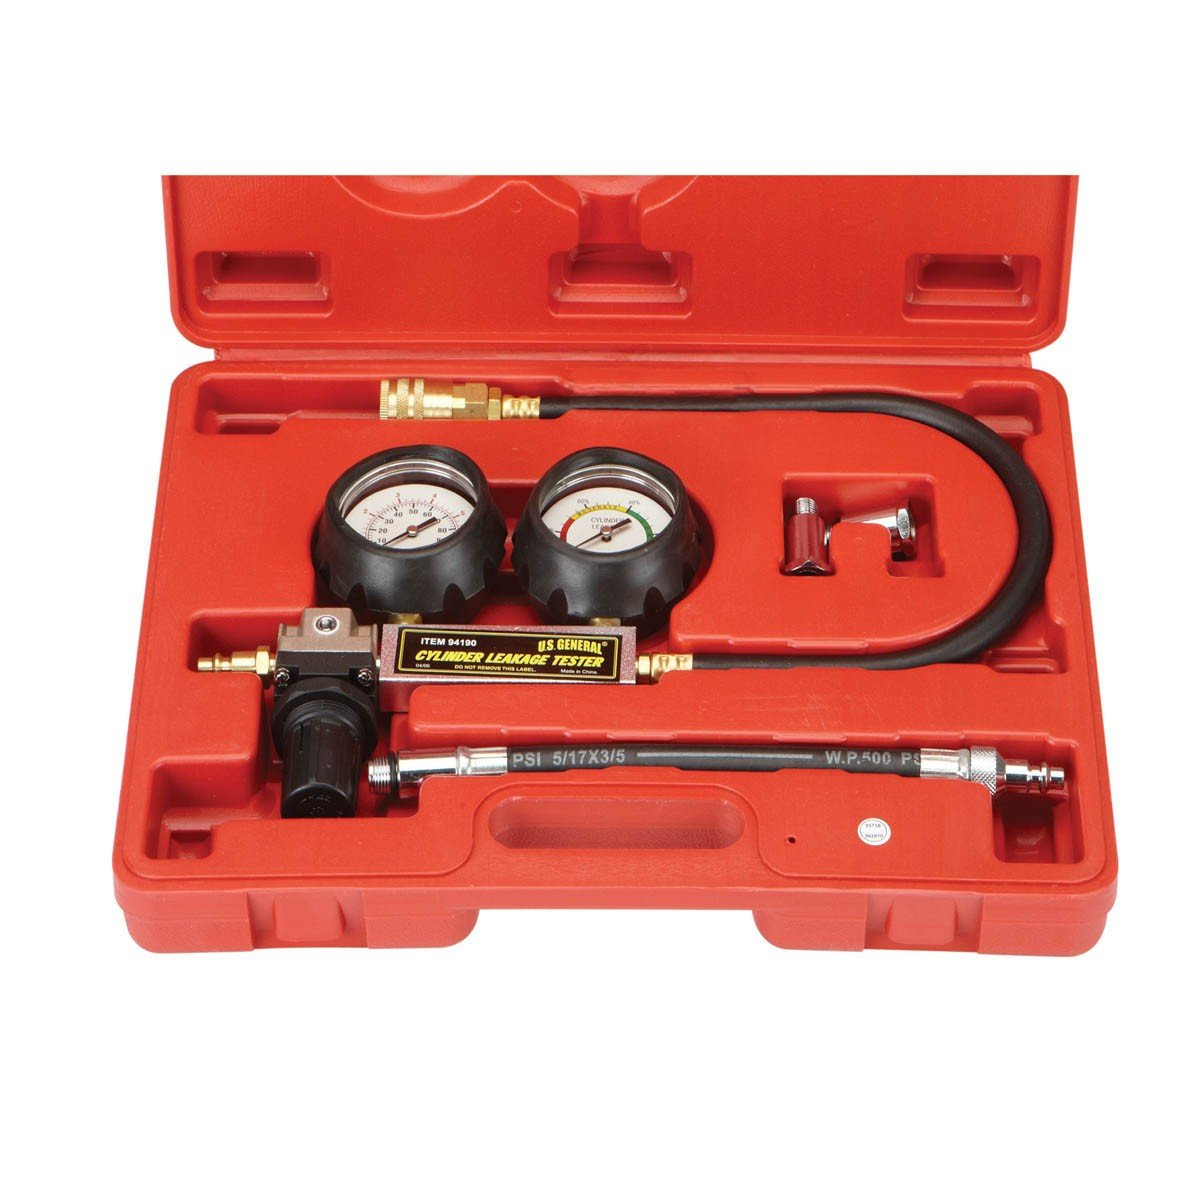 Cylinder Leak-Down Tester from TNM